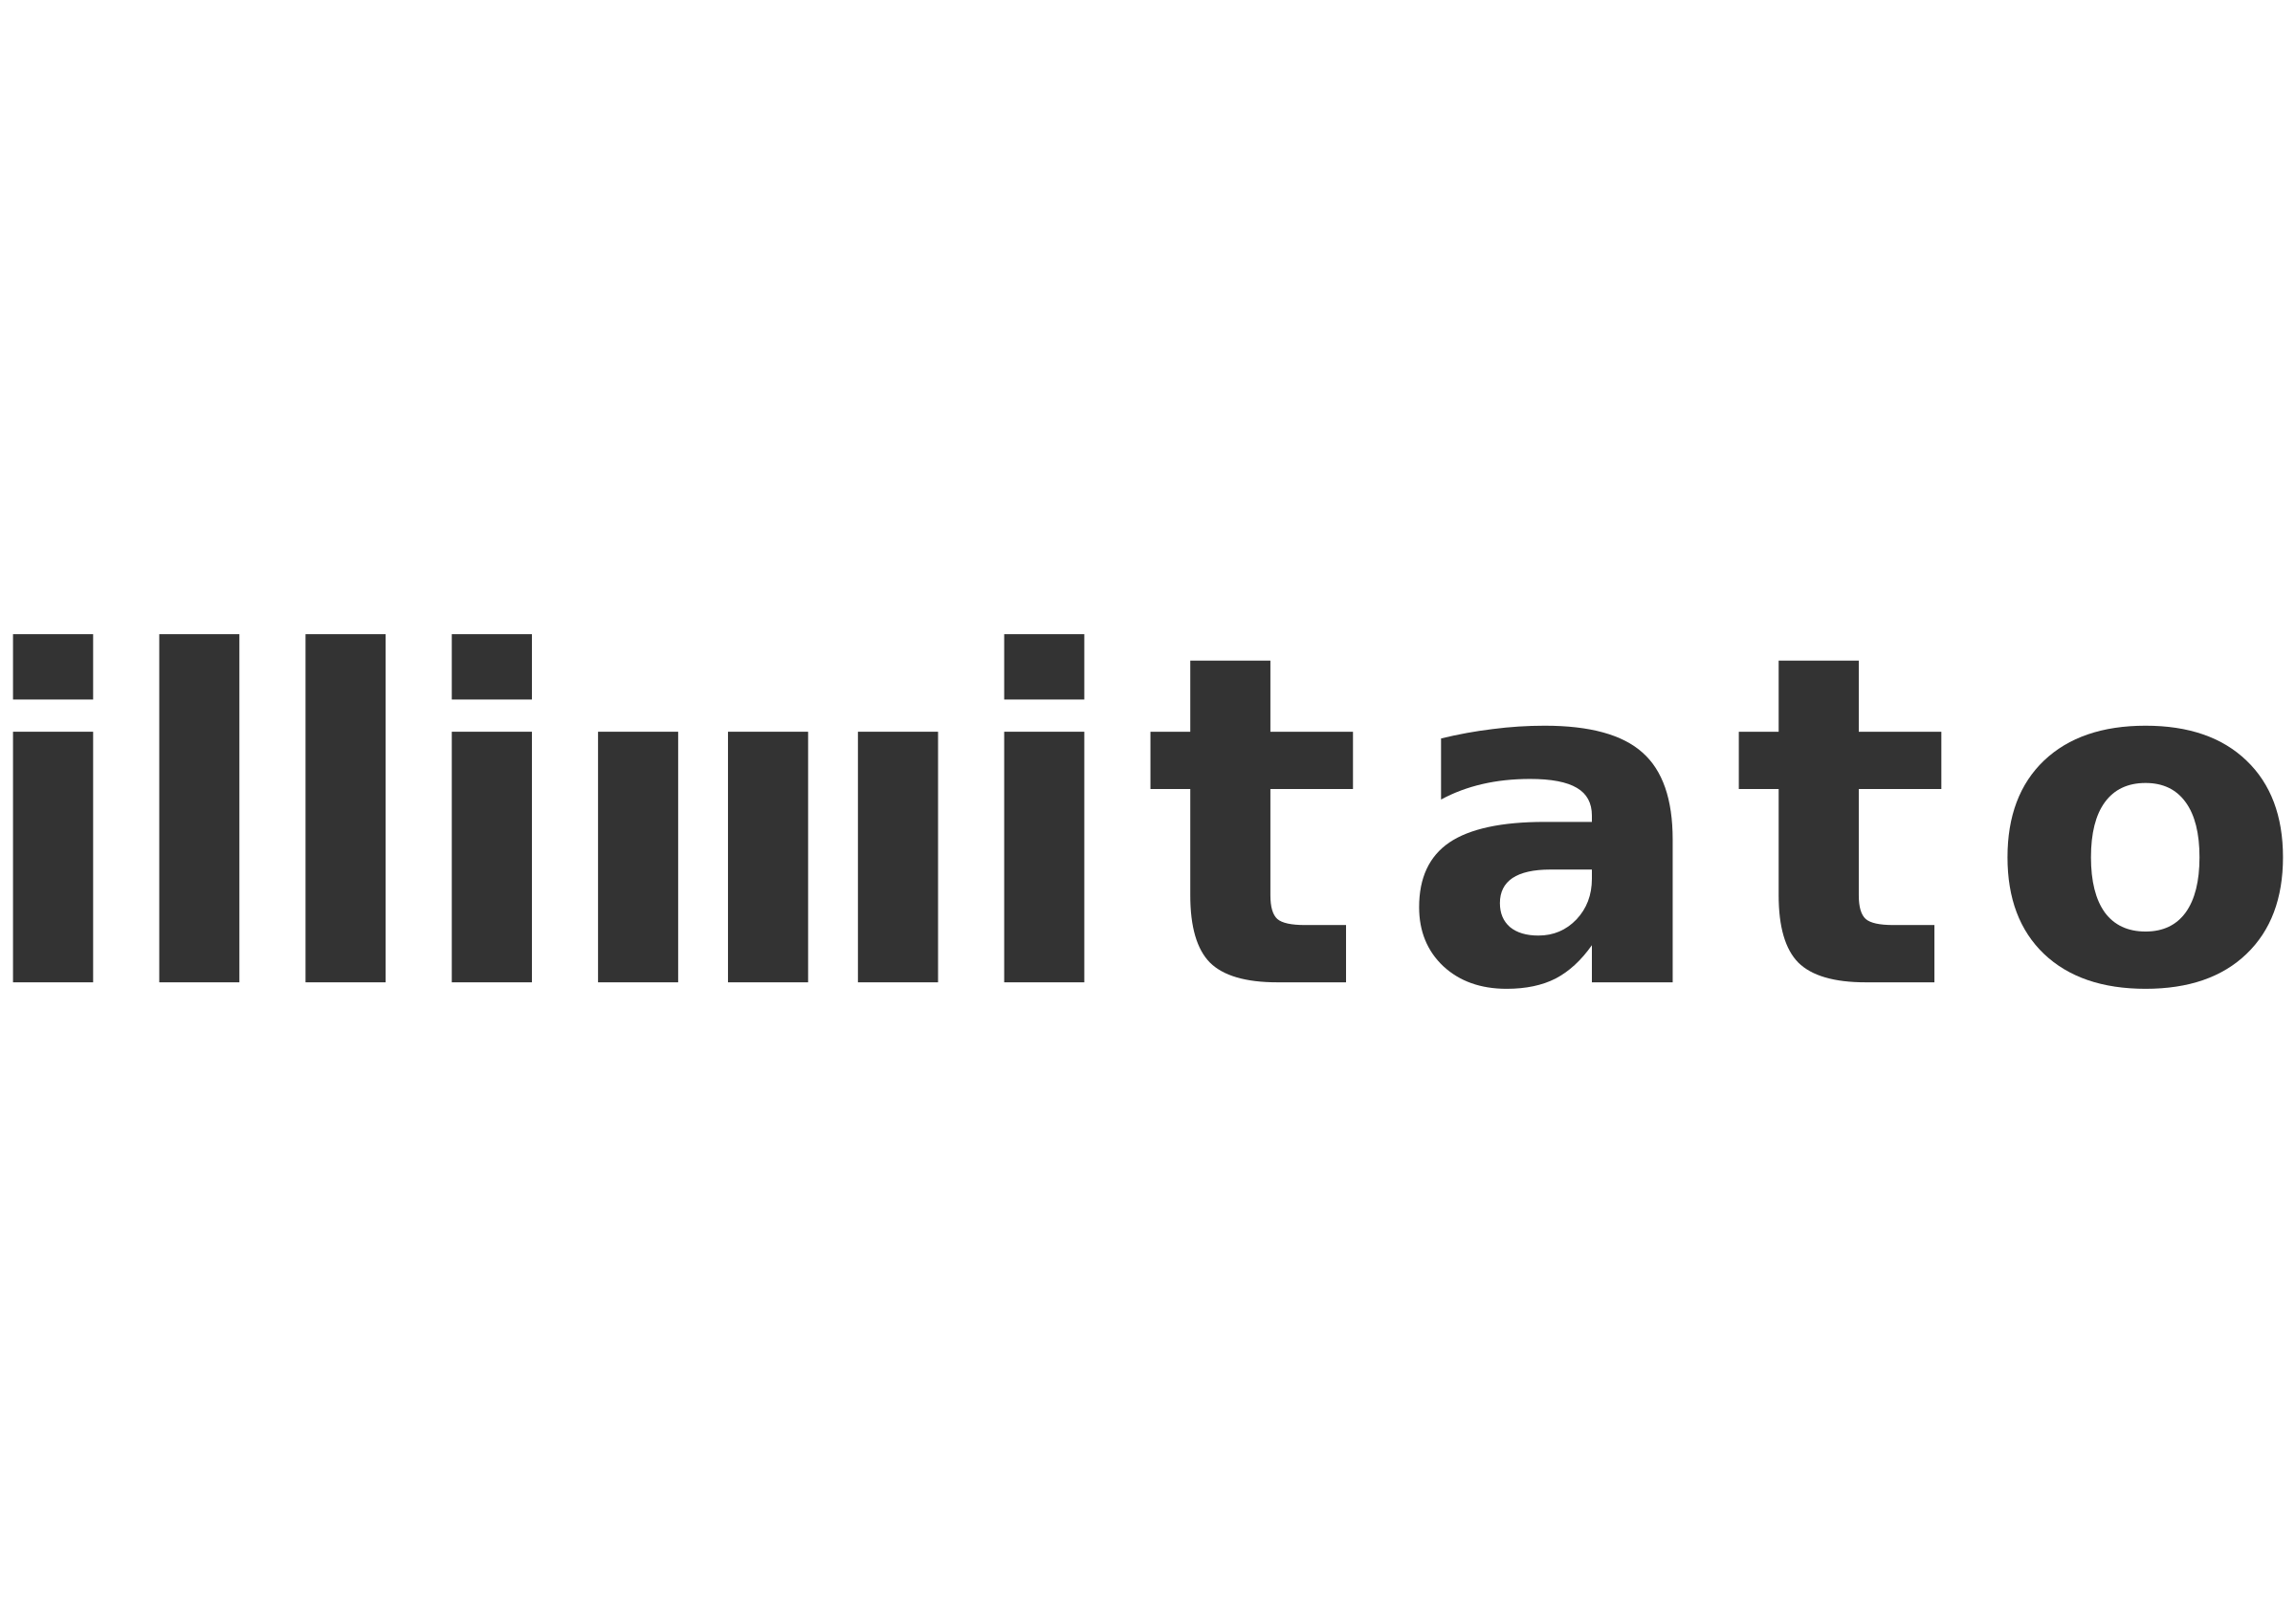 ILLIMITATO by dordy